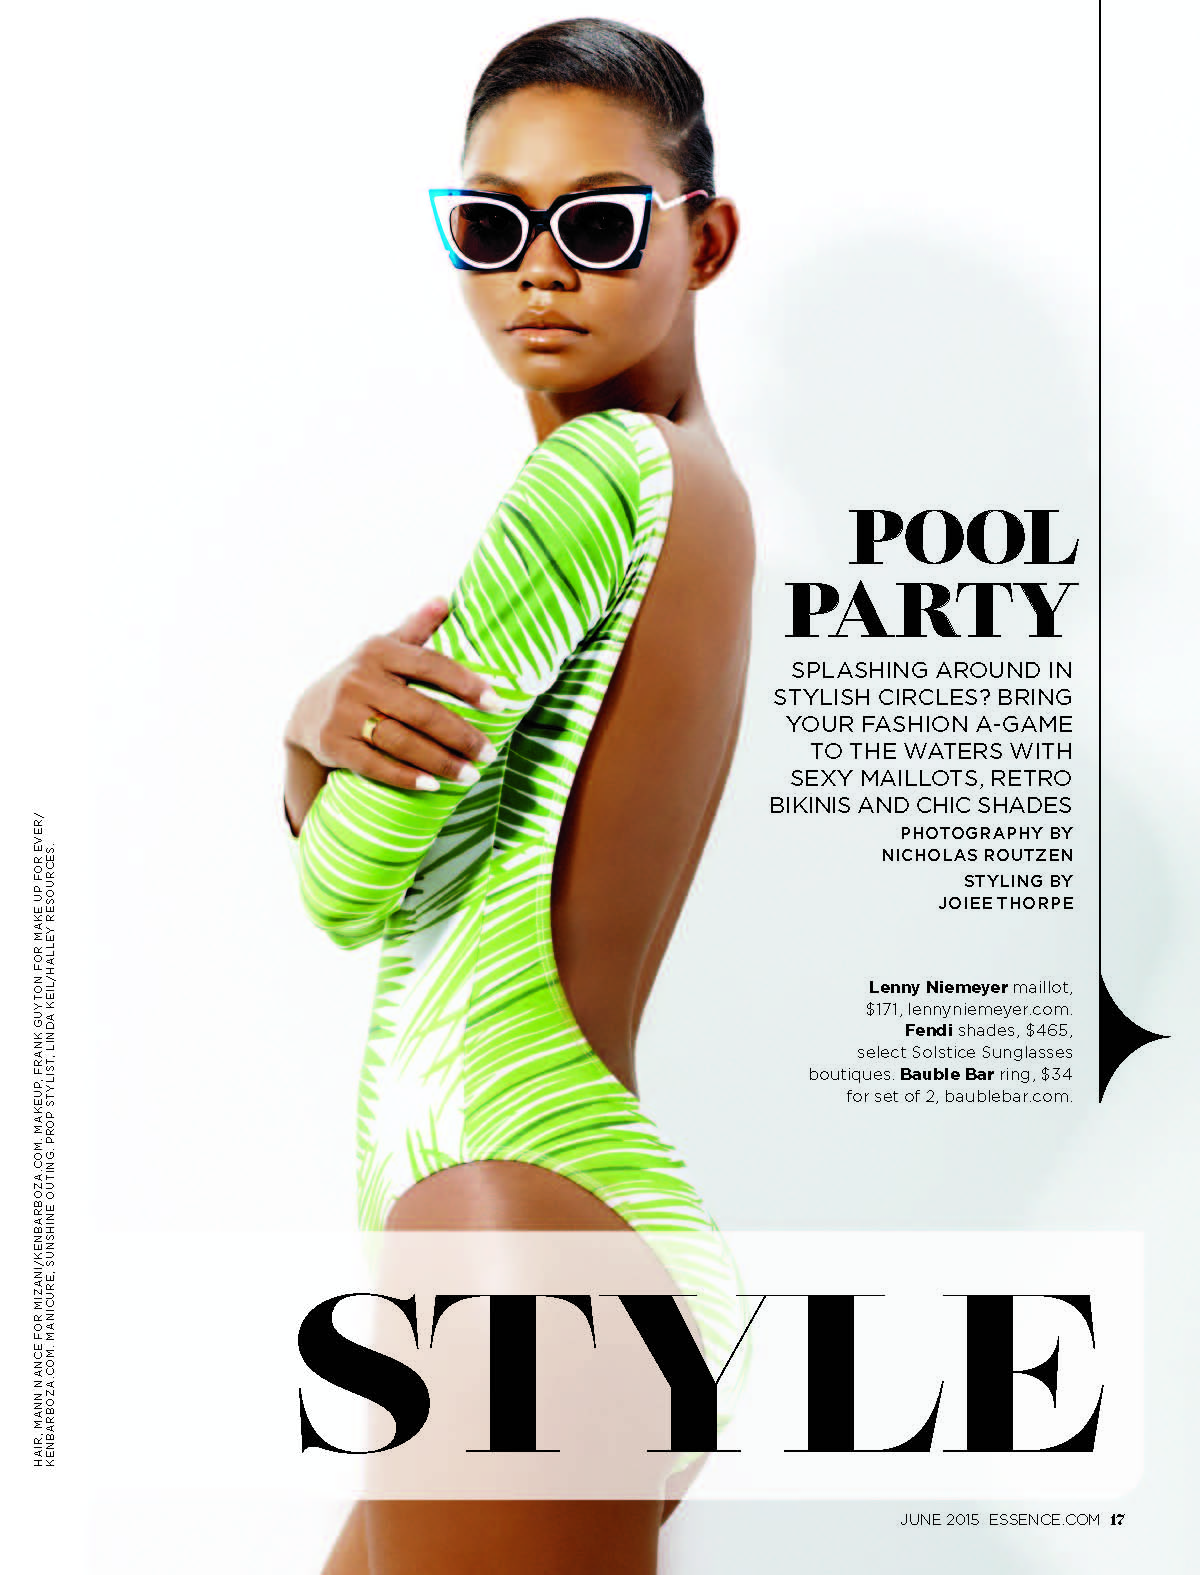 pool-party_Page_1.jpg